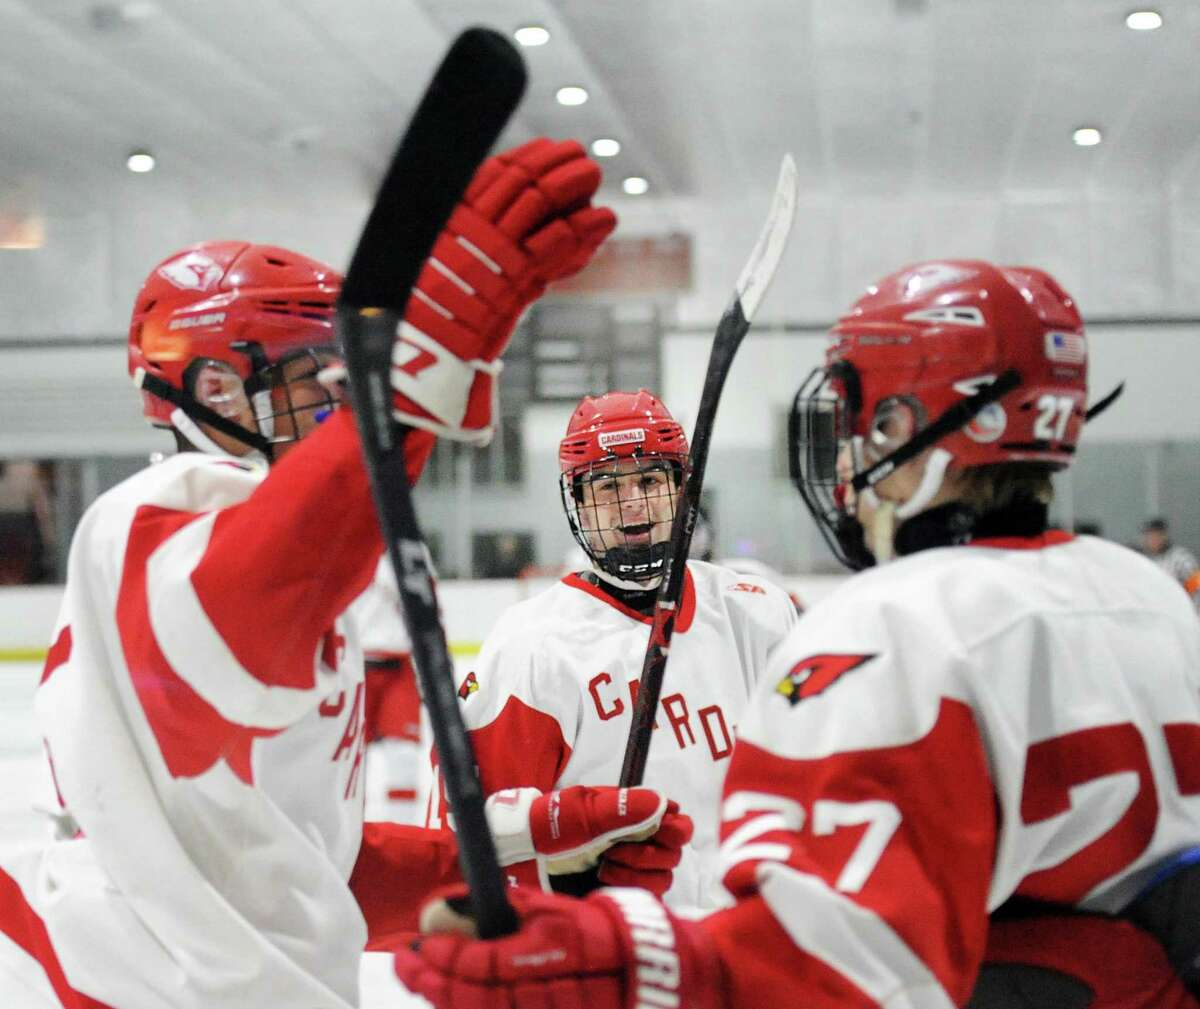 At center, Greenwich's Matthew Davey smiles after teammate Nicolas Pelletier-Martinelli, left, scored a second period goal. Joining the celebration at right is Nikita Kovalev on Wednesday in Greenwich.